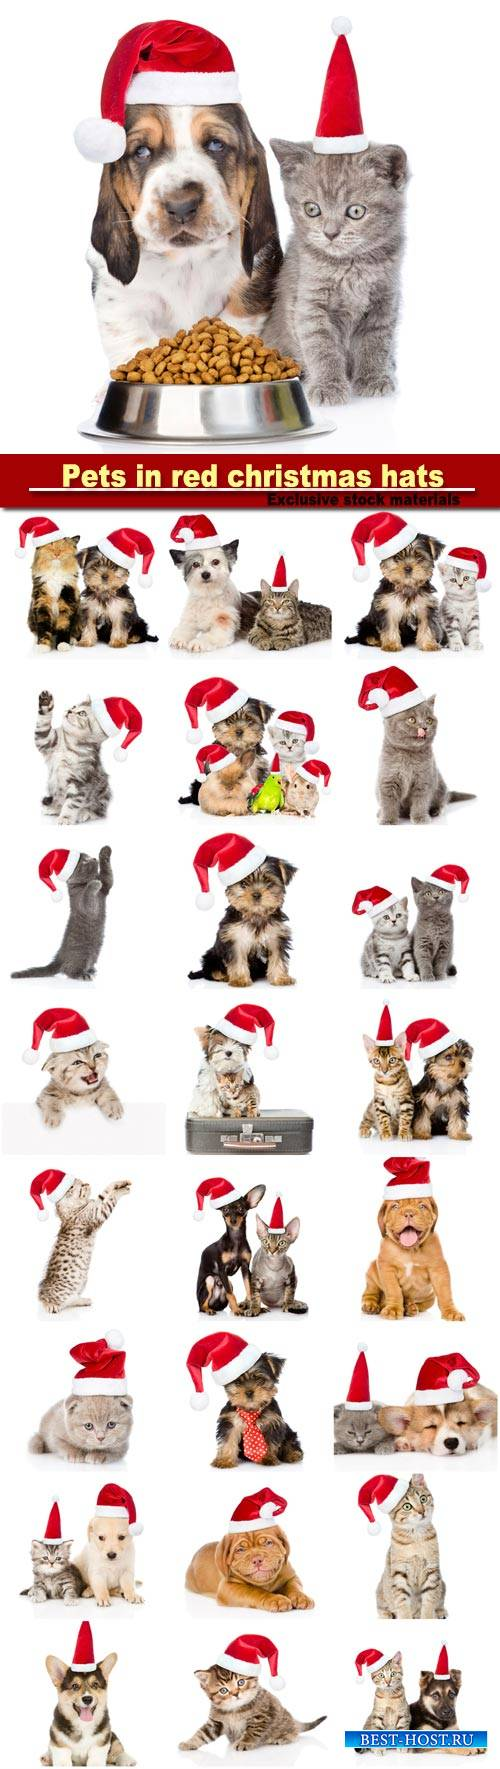 Group of pets in red christmas hats, isolated on white background